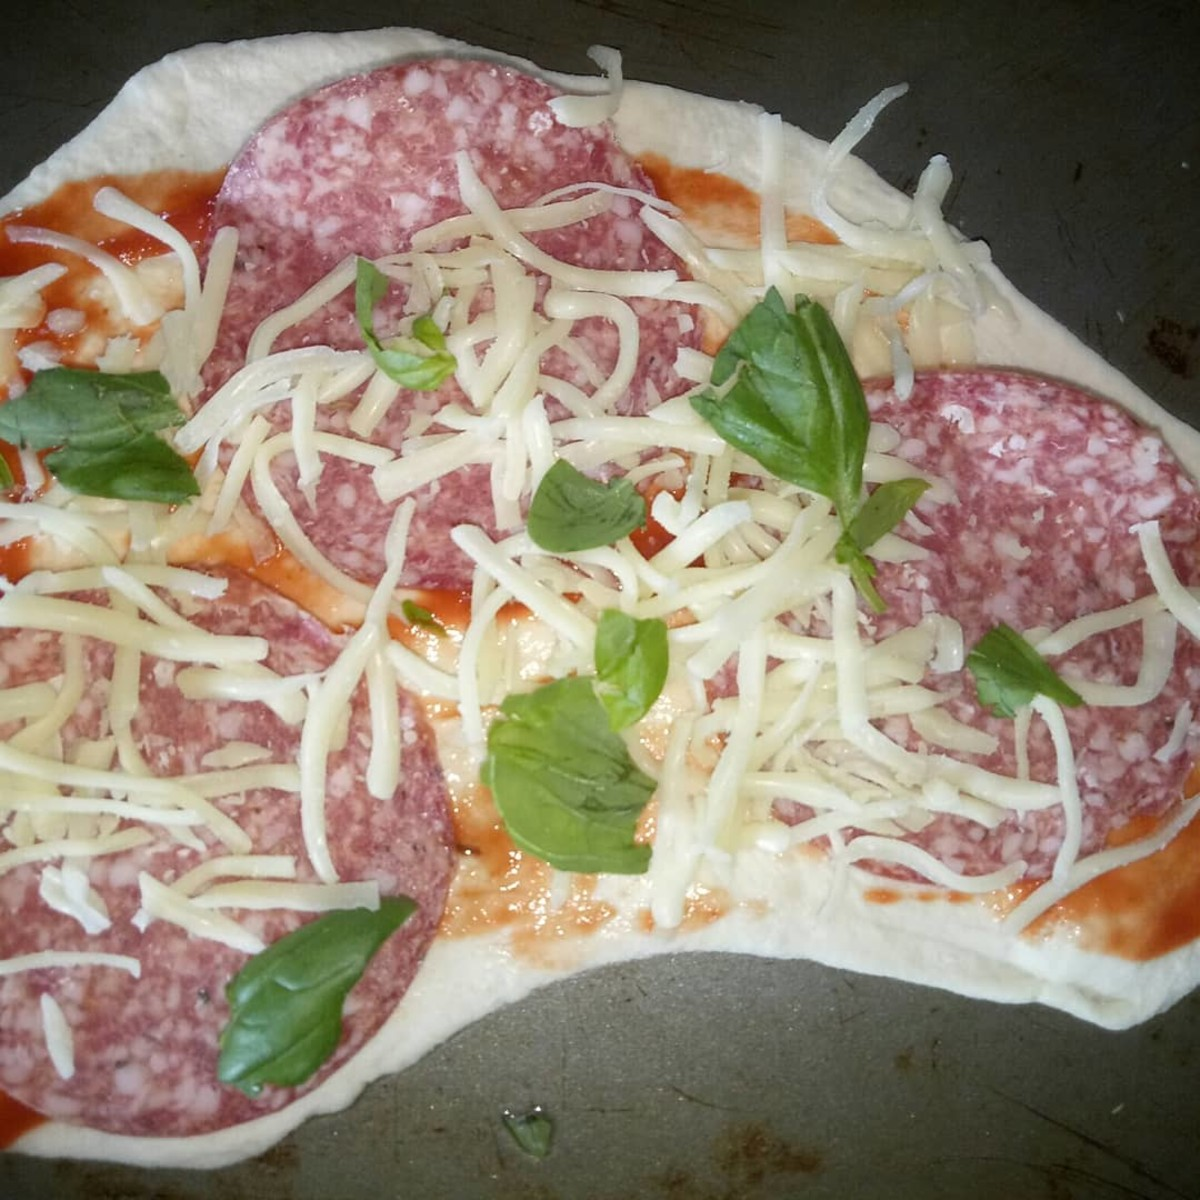 Salami, cheddar and basil pizza ready to go into the oven.